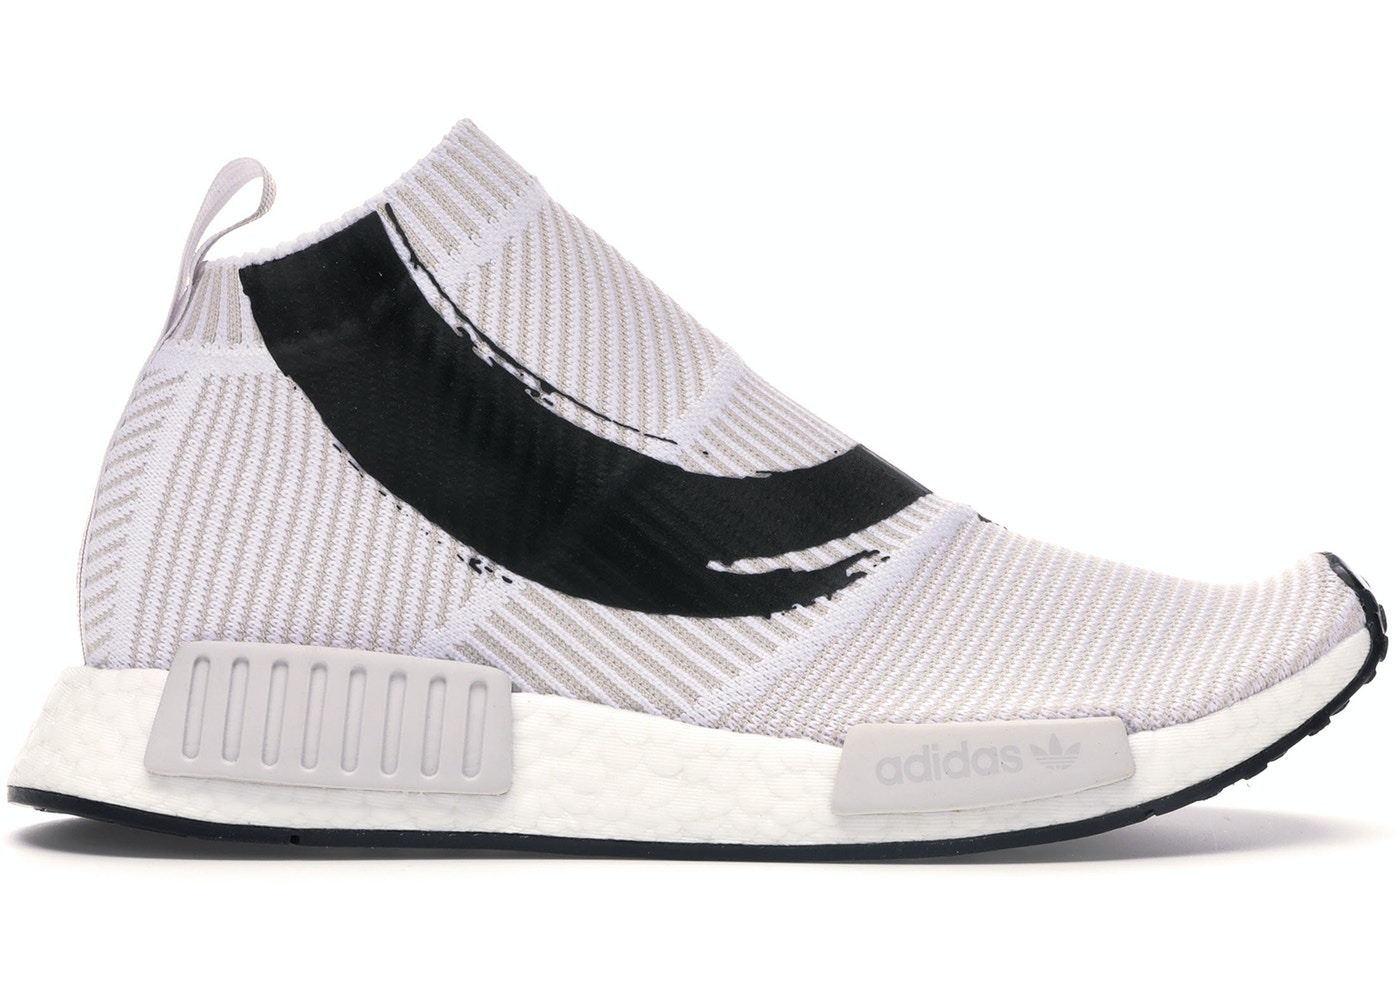 release info on sale retailer dirt cheap Buy adidas NMD CS1 Shoes & Deadstock Sneakers